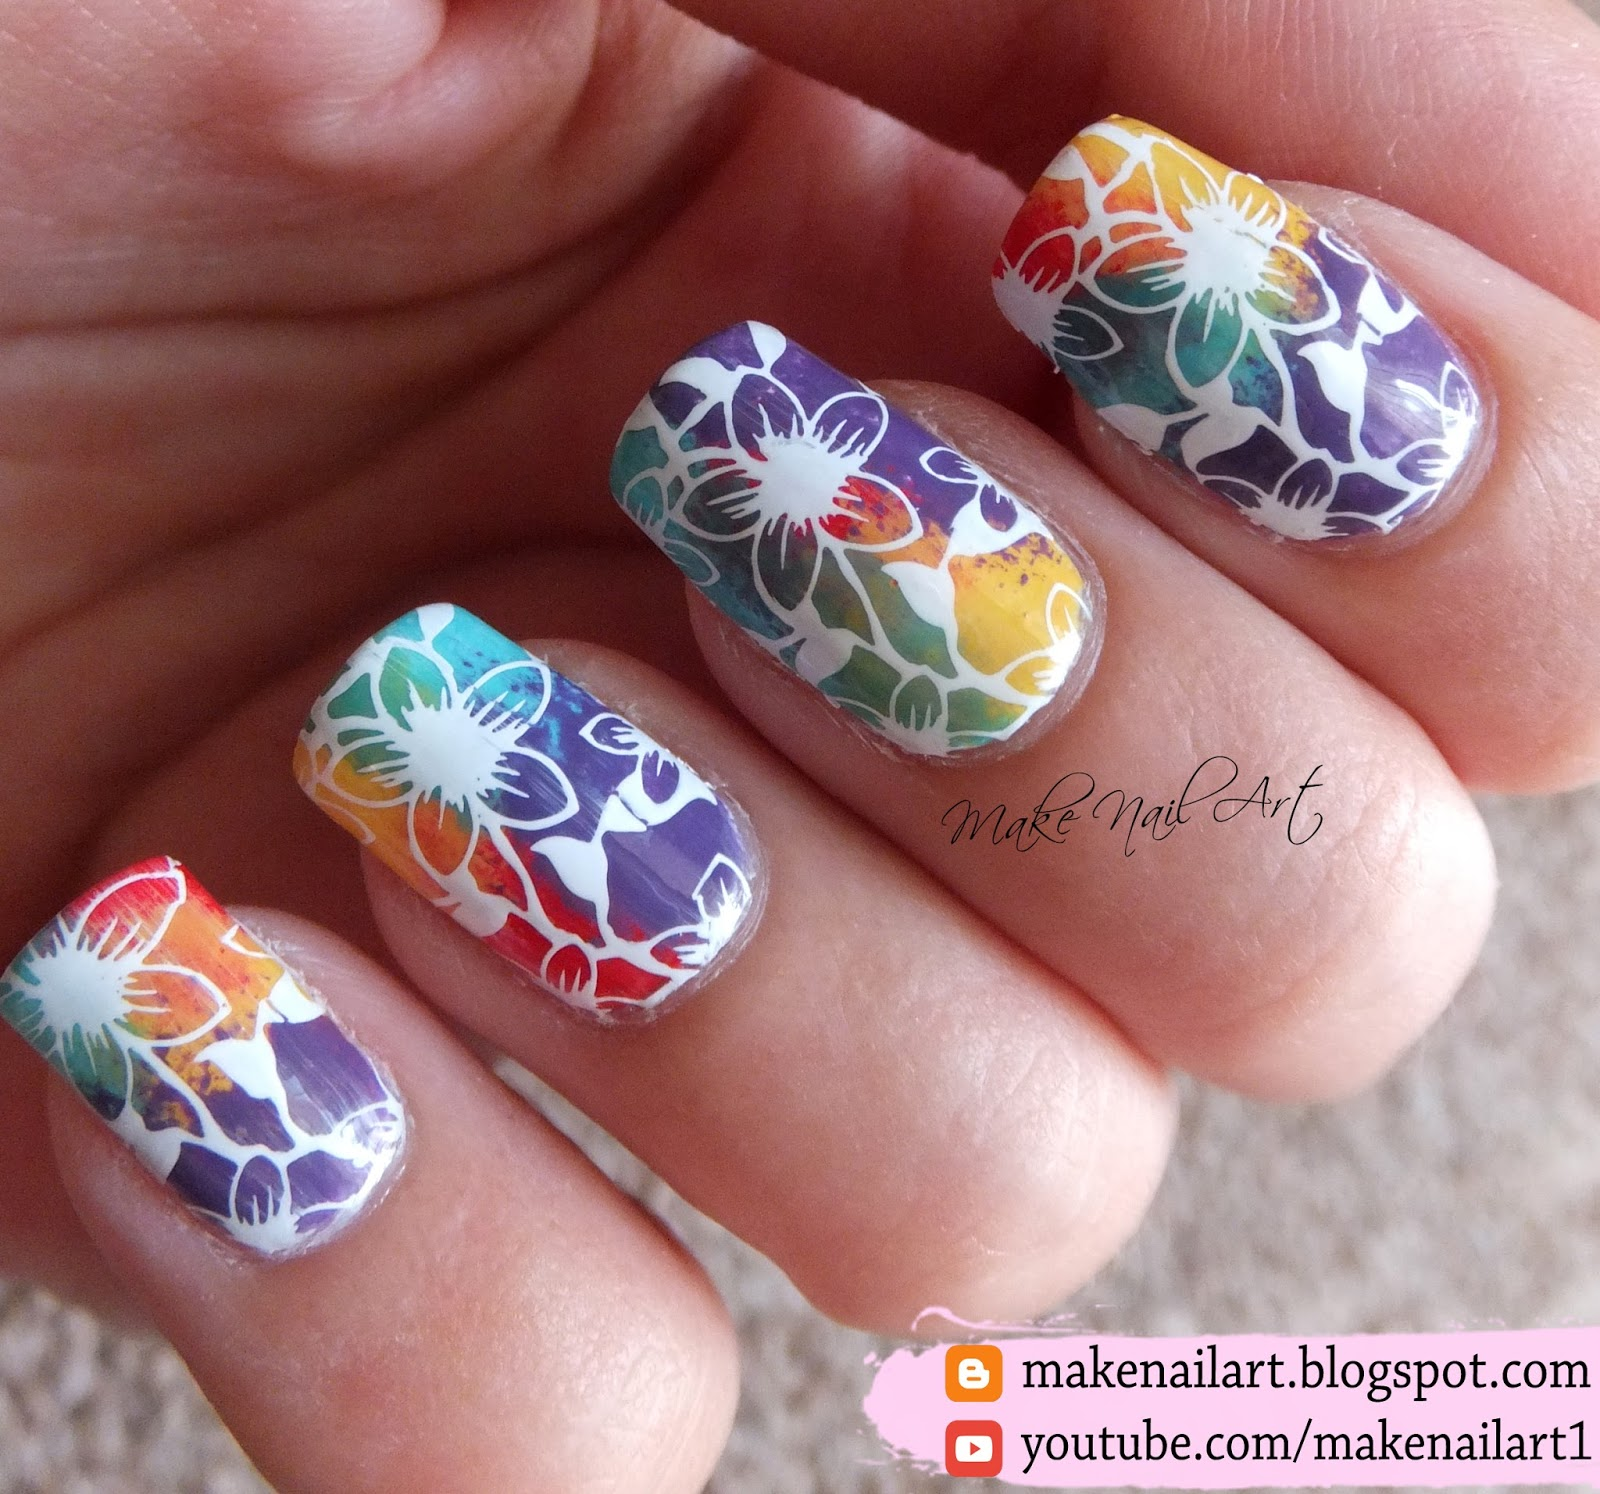 Make Nail Art Stamping Flowers With Rainbow Background Nail Art